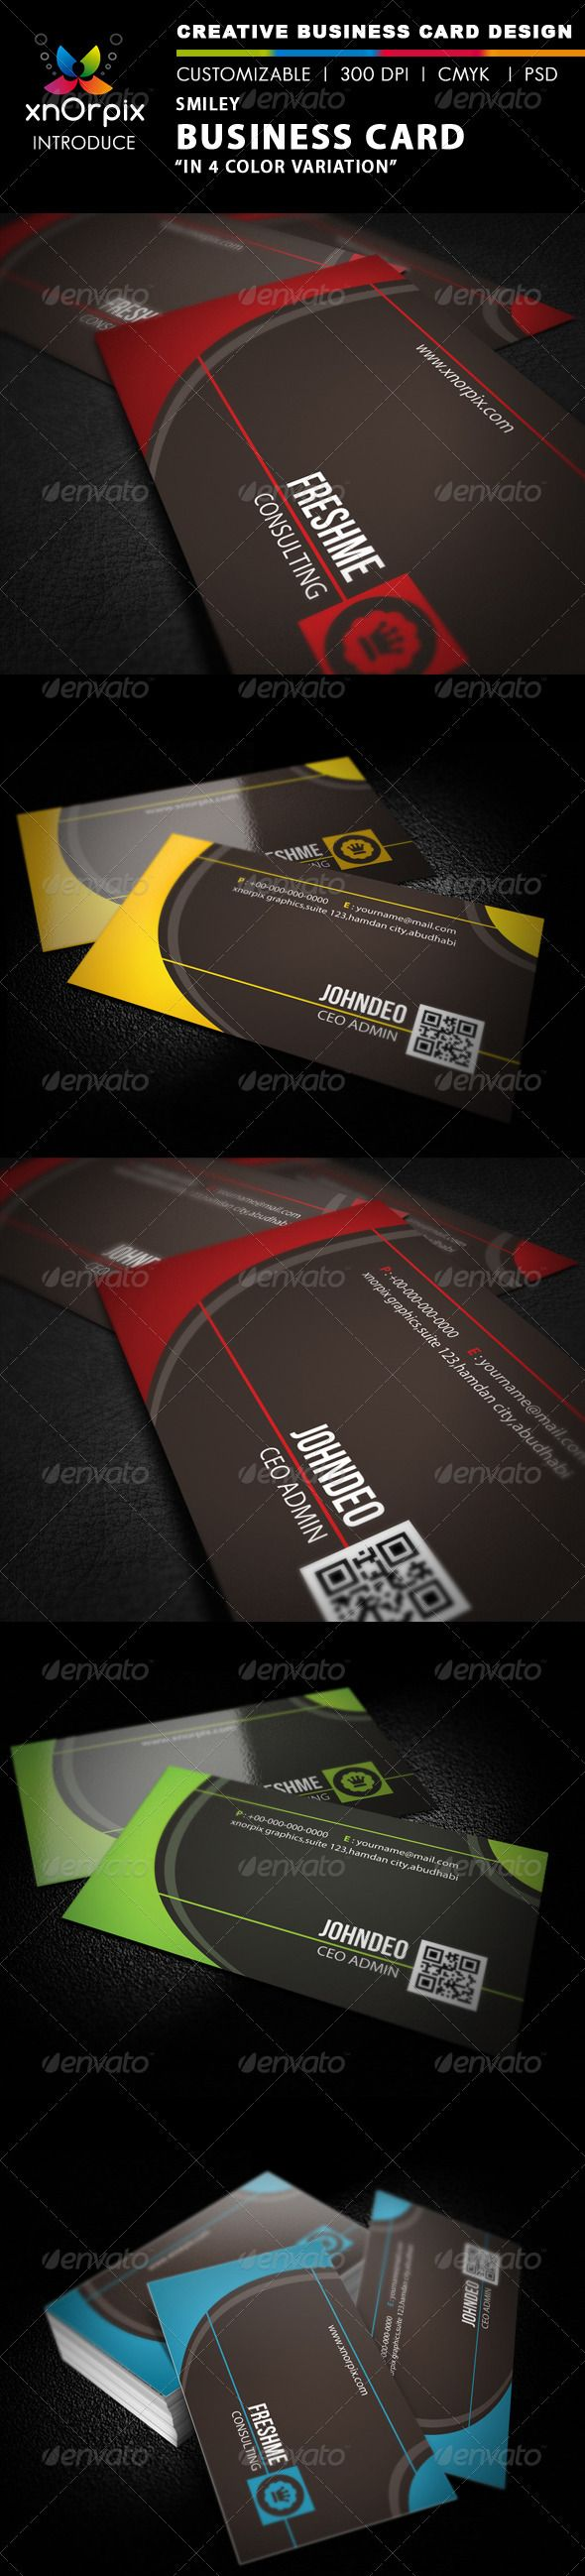 Photoshop business card color mode image collections card design 11 best business cards images on pinterest dj business cards card smiley business card reheart image reheart Image collections